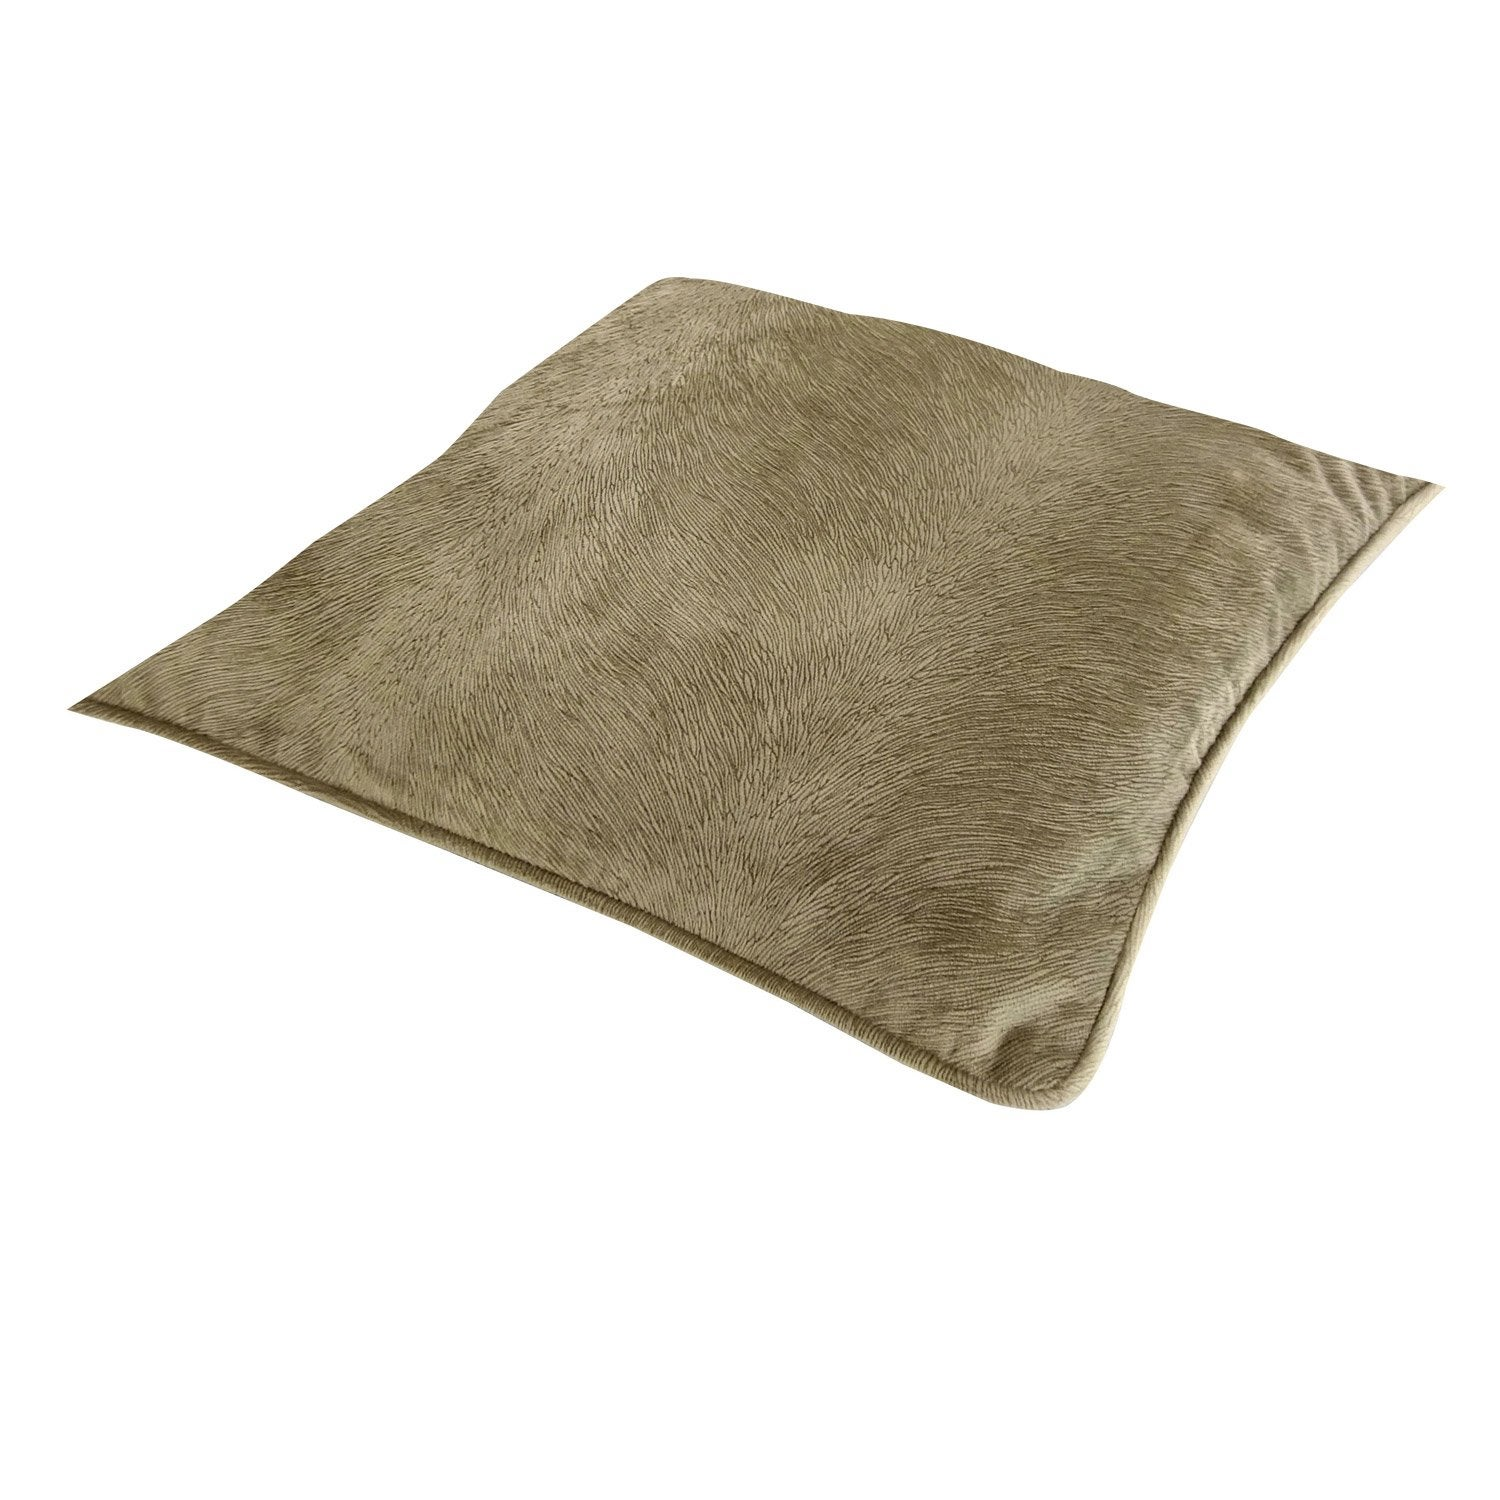 Coussin equita caf x cm leroy merlin - Coussins leroy merlin ...